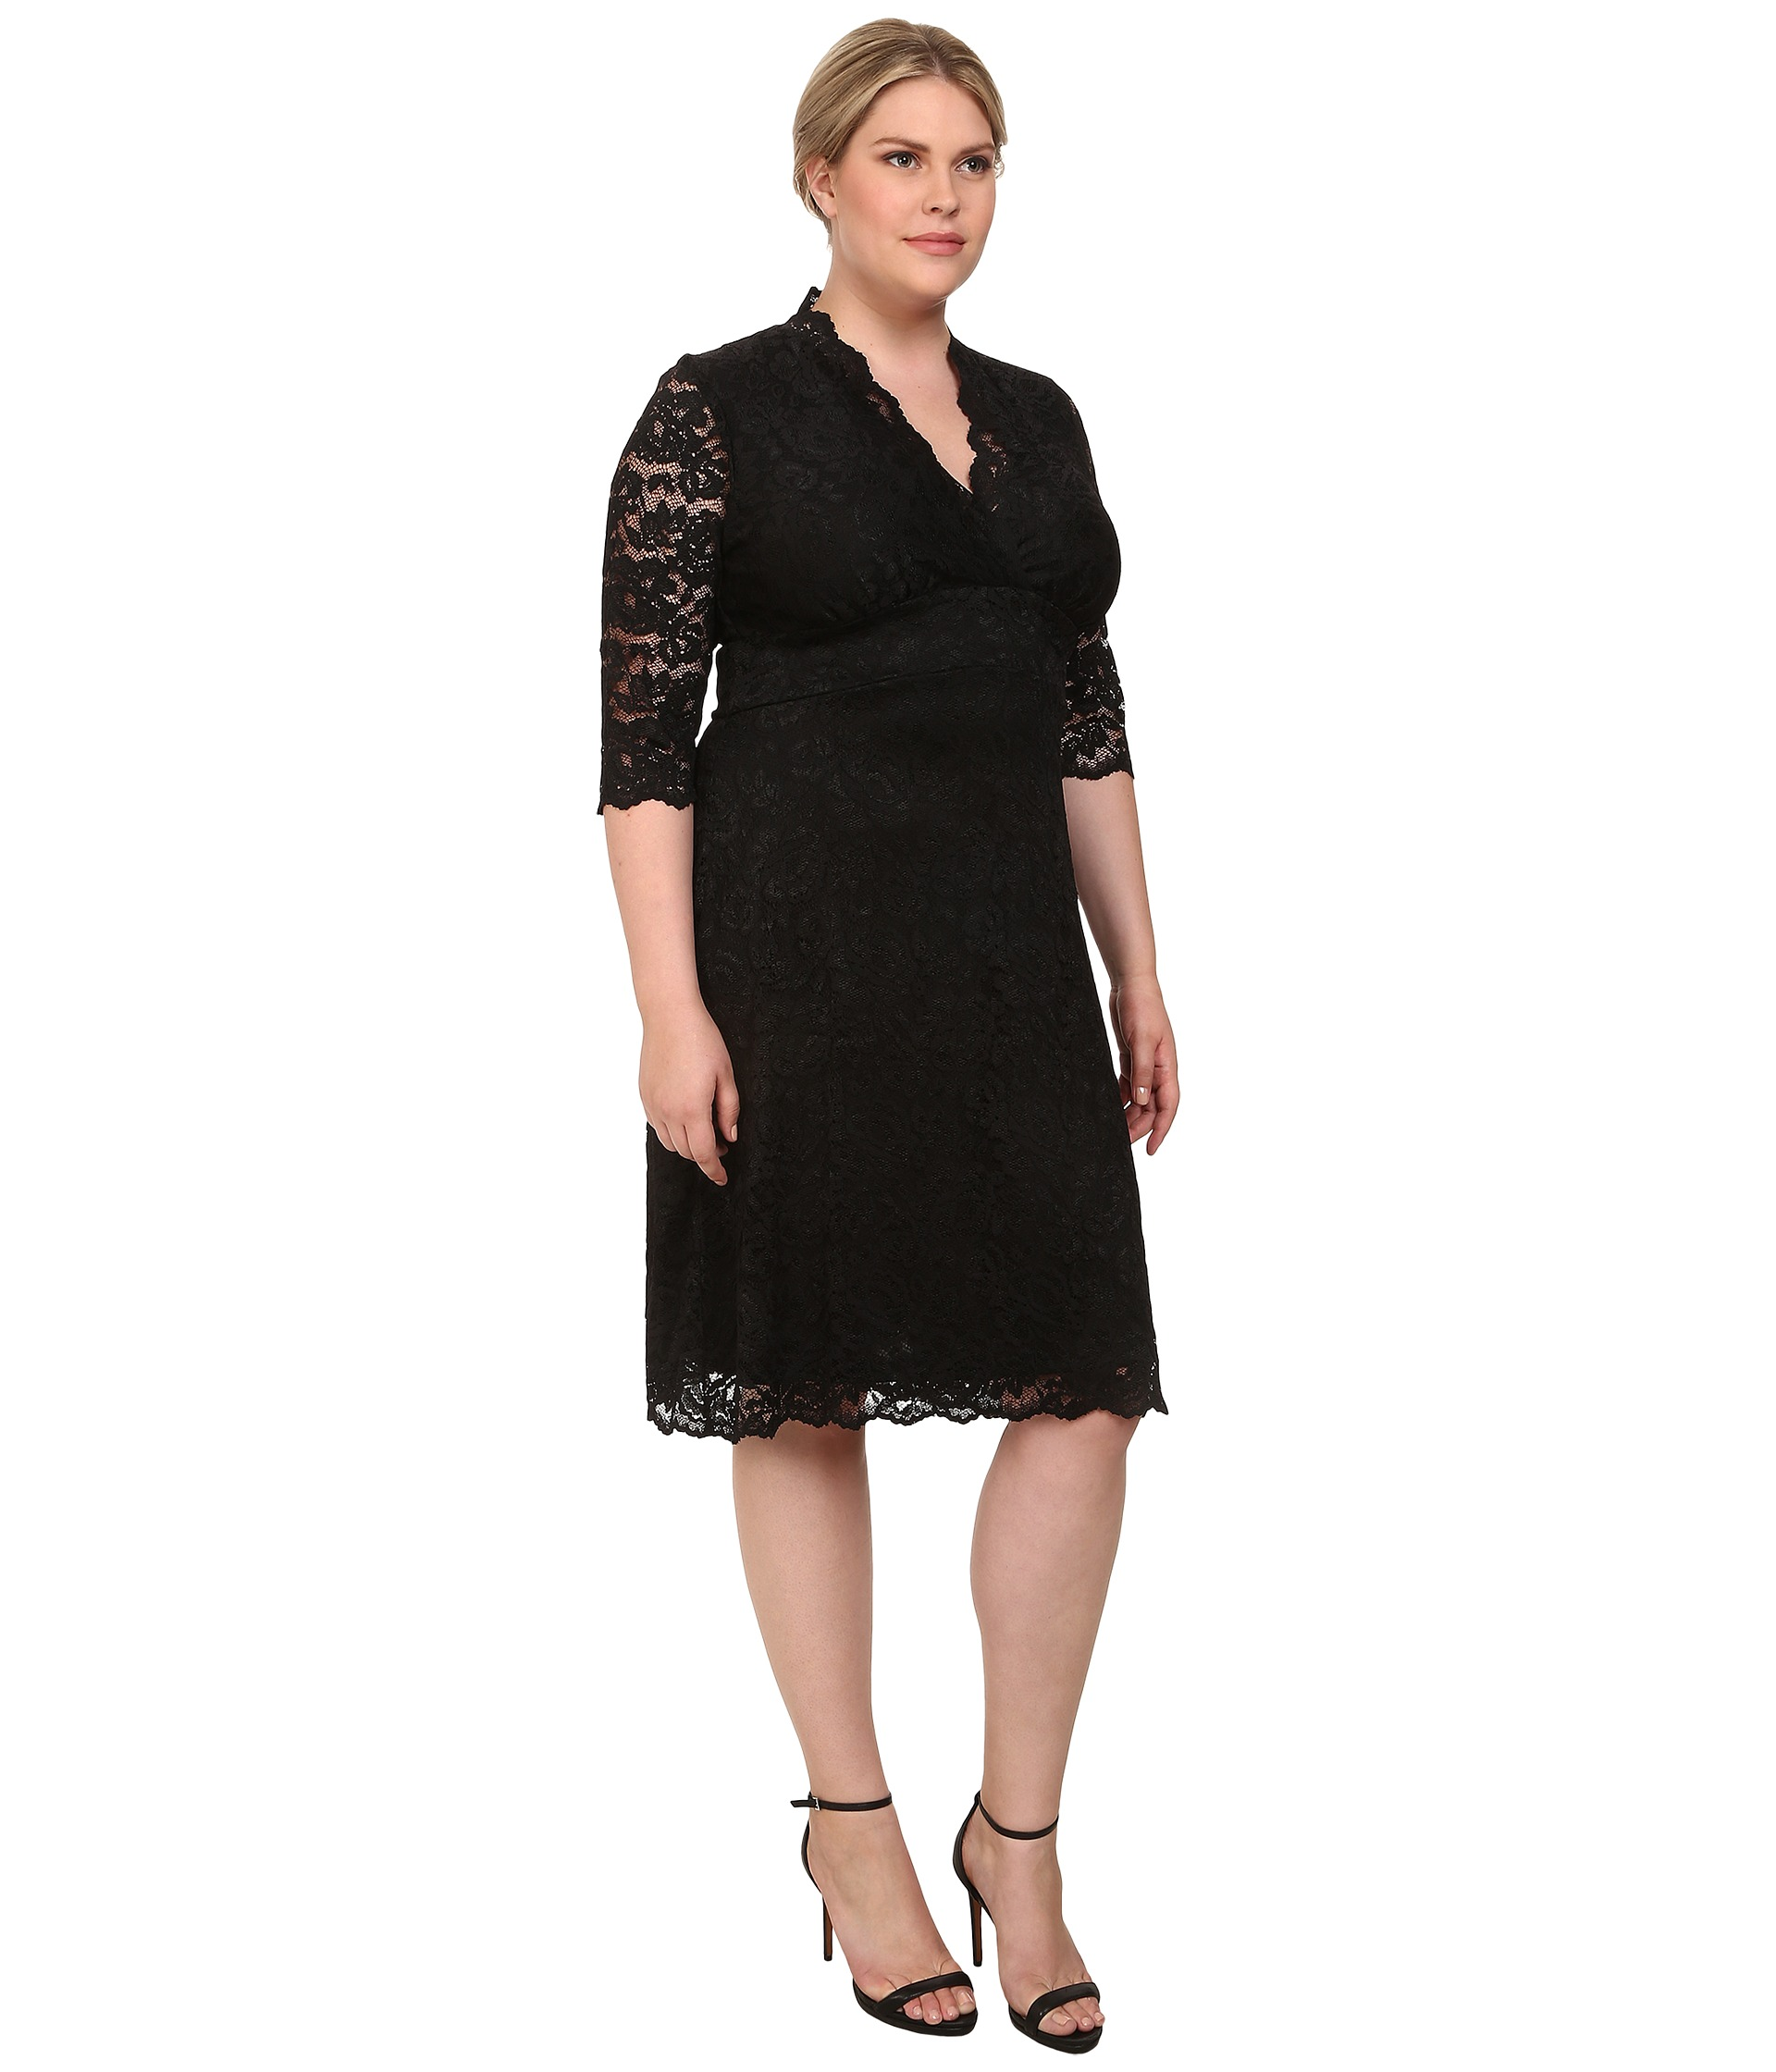 0bcfd6c0967 Free shipping BOTH ways on kiyonna plus size dresses from our vast  selection of styles.